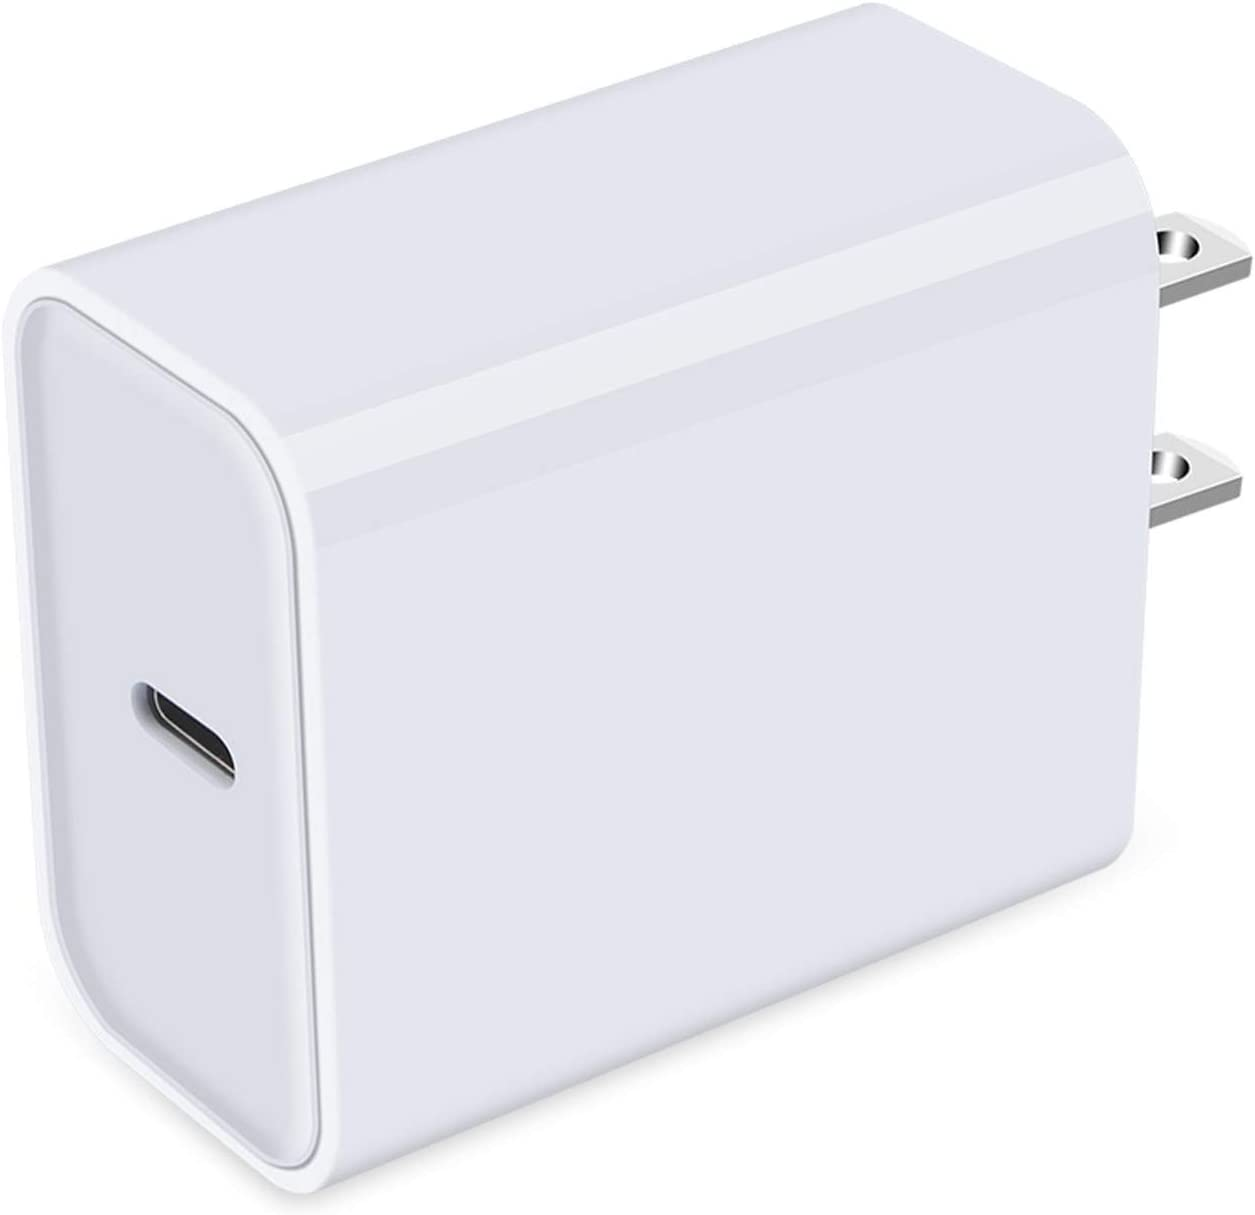 USB C Wall Charger Fast Charging for iPhone 12, 18W Type C Charging Block Brick Box Wall Adapter Plug PD Fast Charger for iPhone 12 11 Pro Max SE XR XS X 8, Samsung Galaxy S21 S20, Pixel 6 5XL 4A 4XL